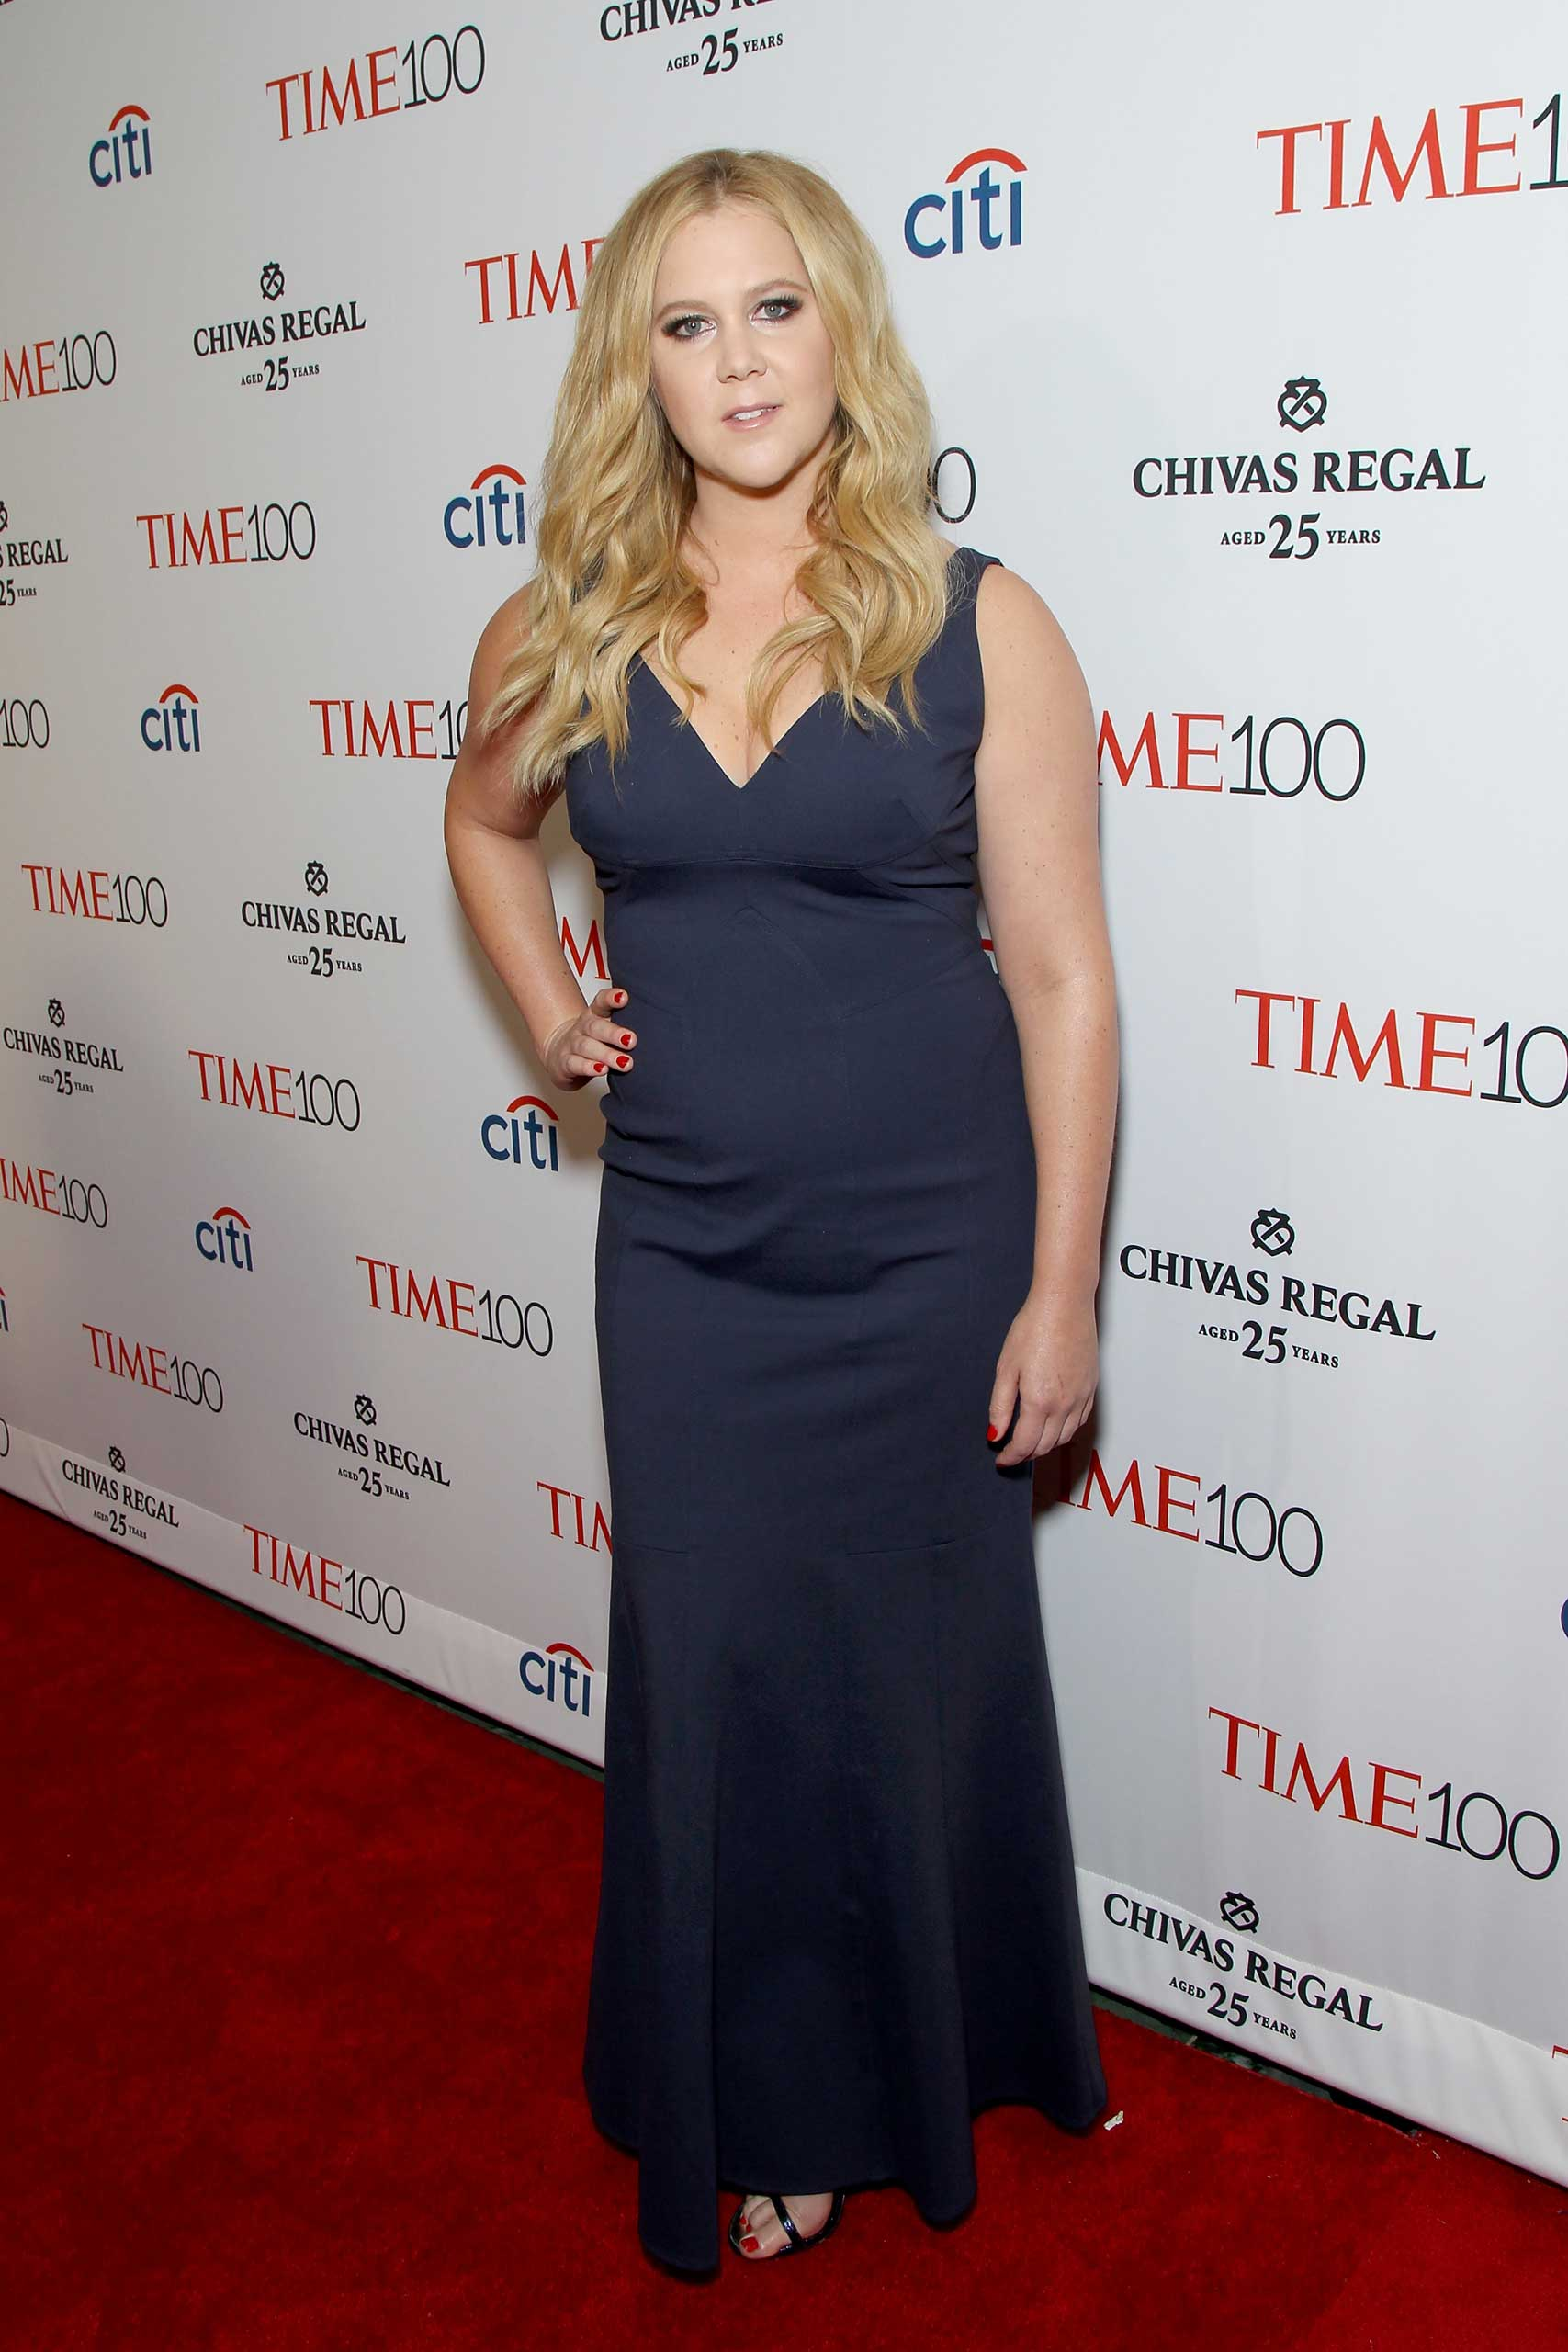 Amy Schumer attends the TIME 100 Gala at Jazz at Lincoln Center in New York City on Apr. 21, 2015.